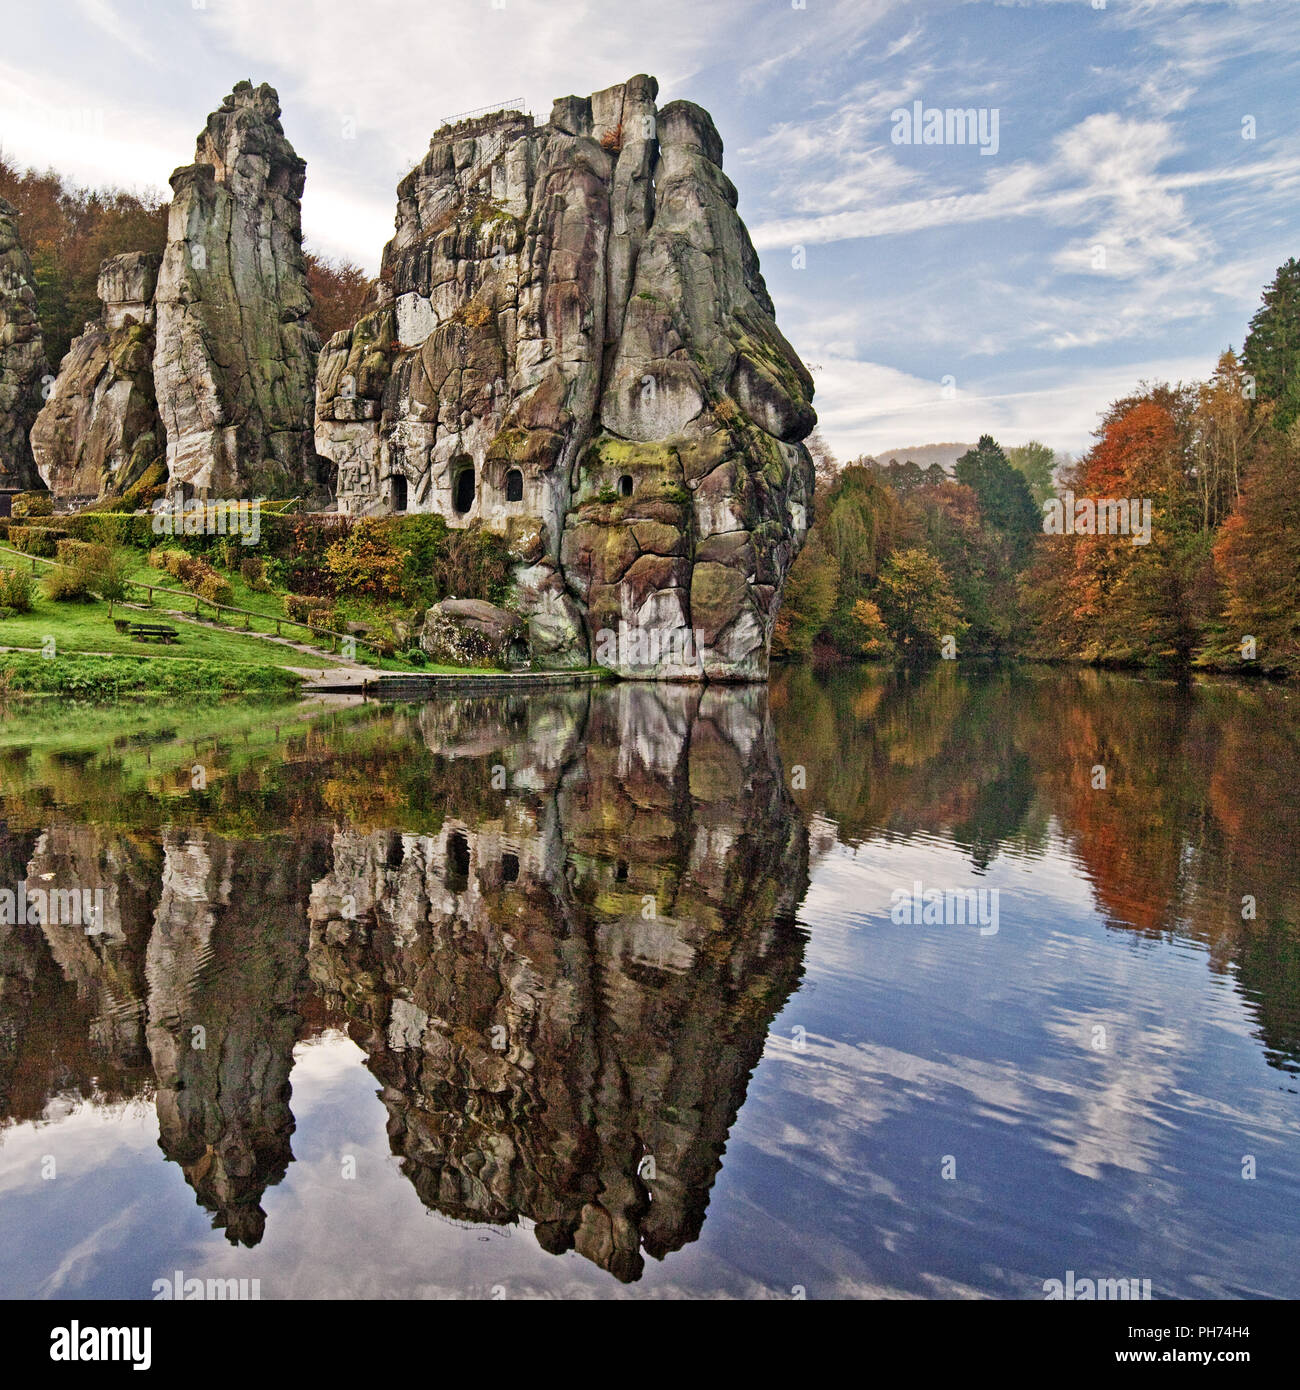 Externsteine, sandstone rock formations, Germany - Stock Image